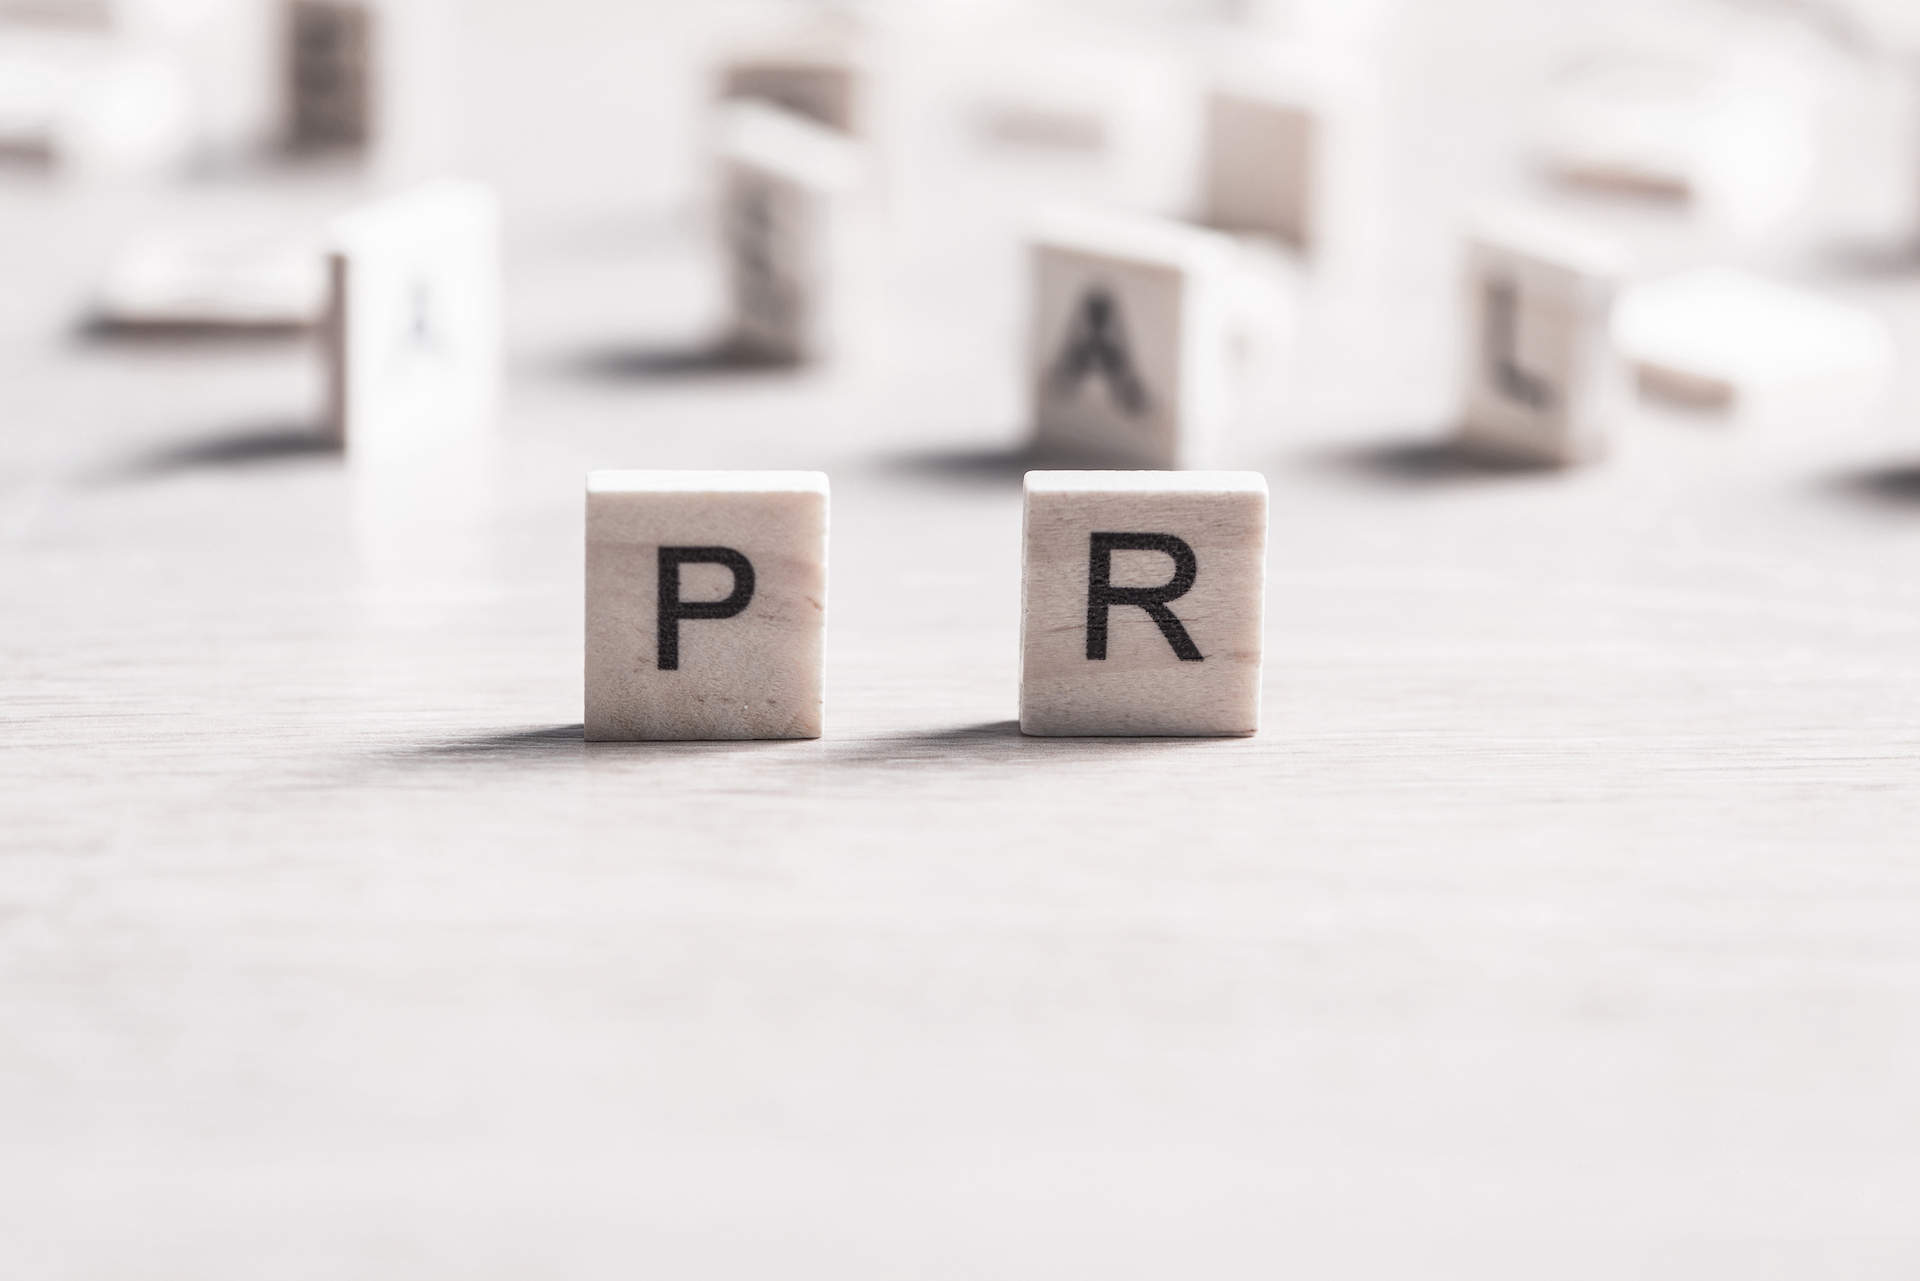 4 Things About Public Relations That Might Surprise You